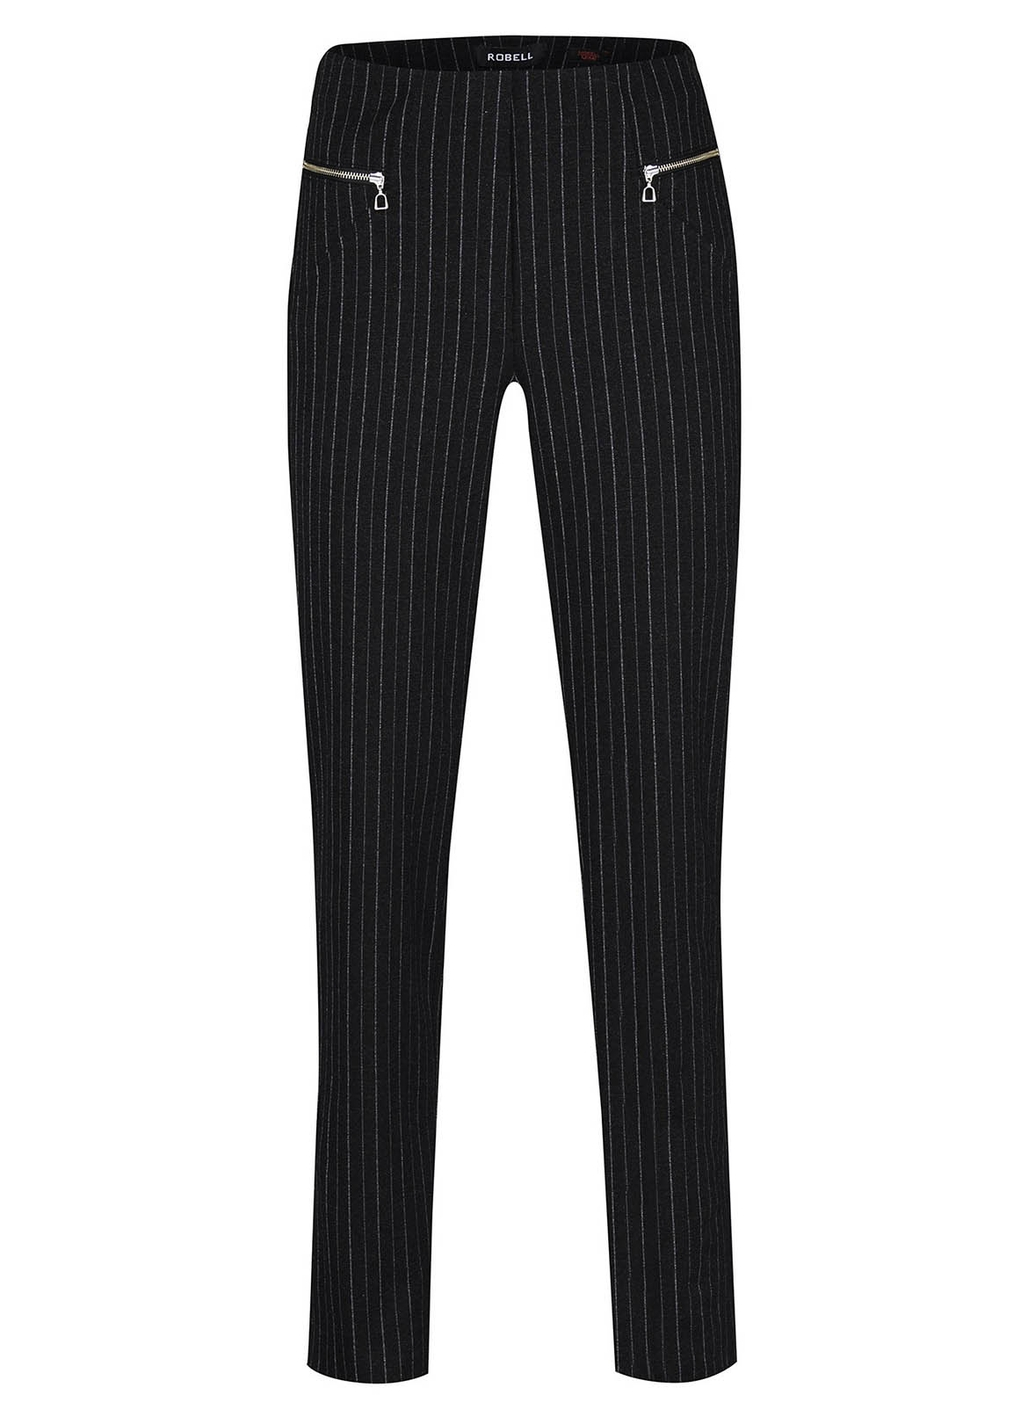 Robell Mimi Pinstripe Trousers in Anthracite